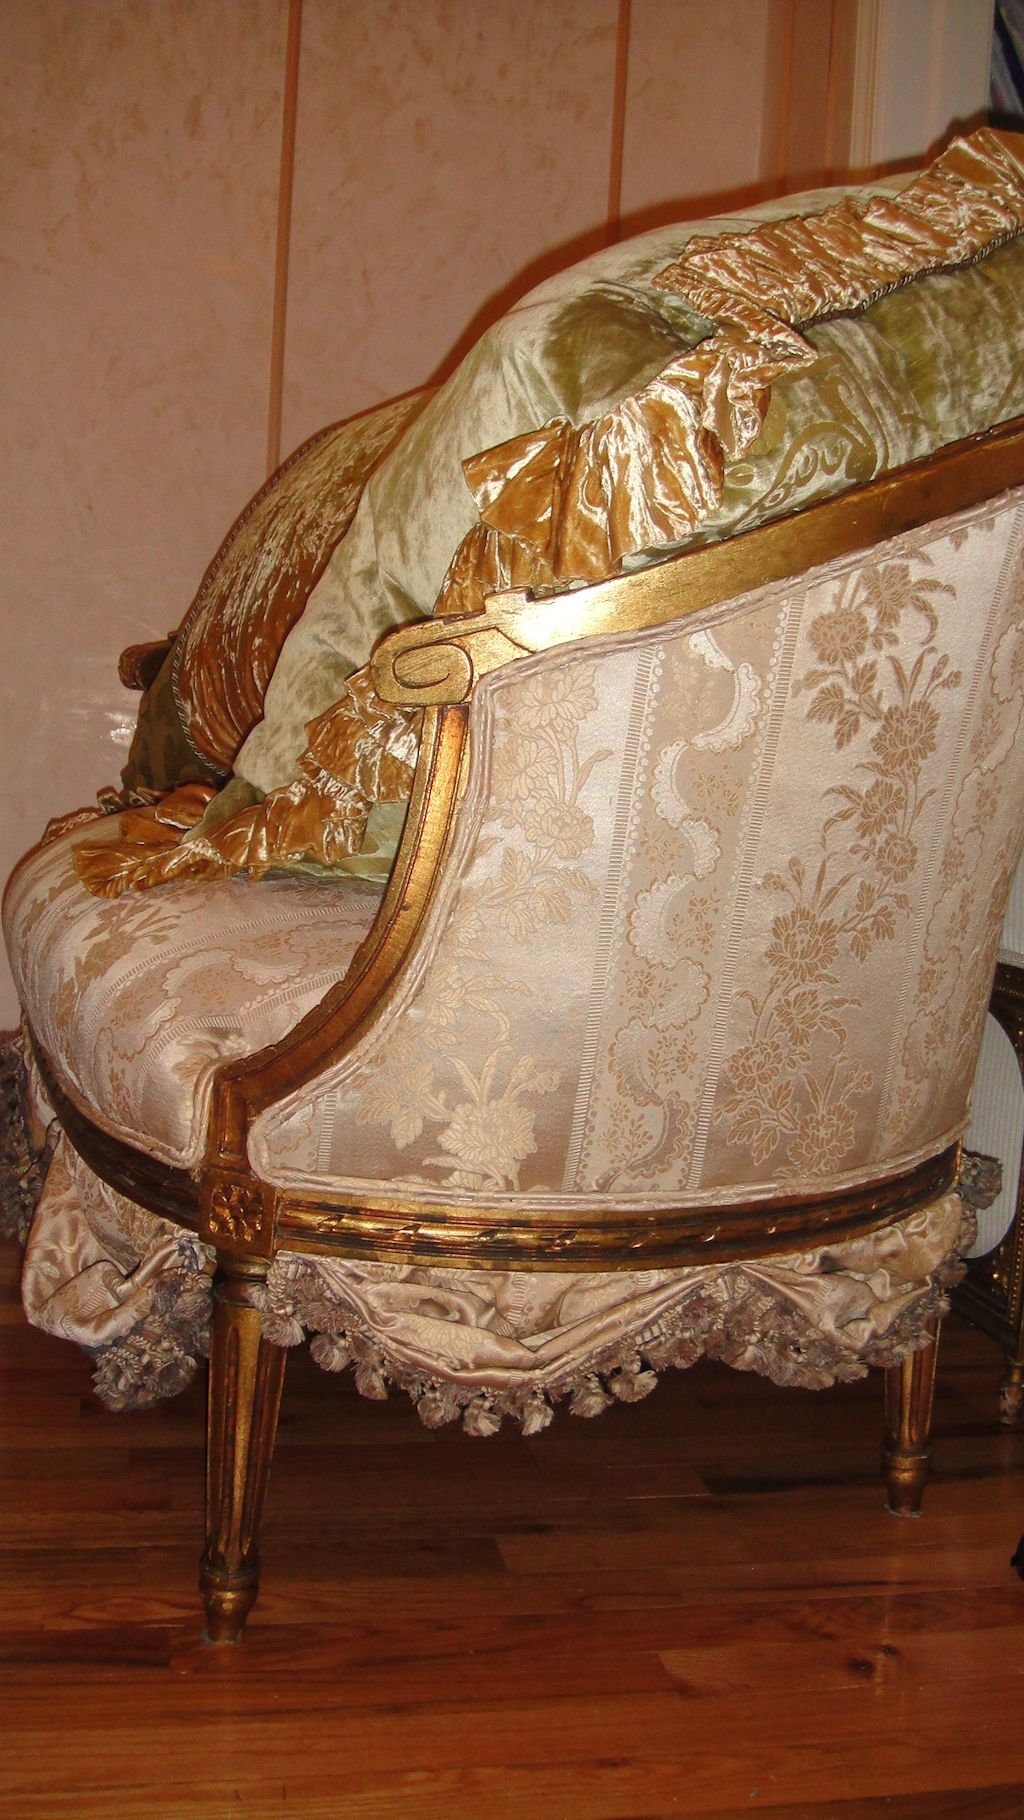 french antique settee sofa loveseat circa 1800 39 s scallops french fabric must se ebay. Black Bedroom Furniture Sets. Home Design Ideas